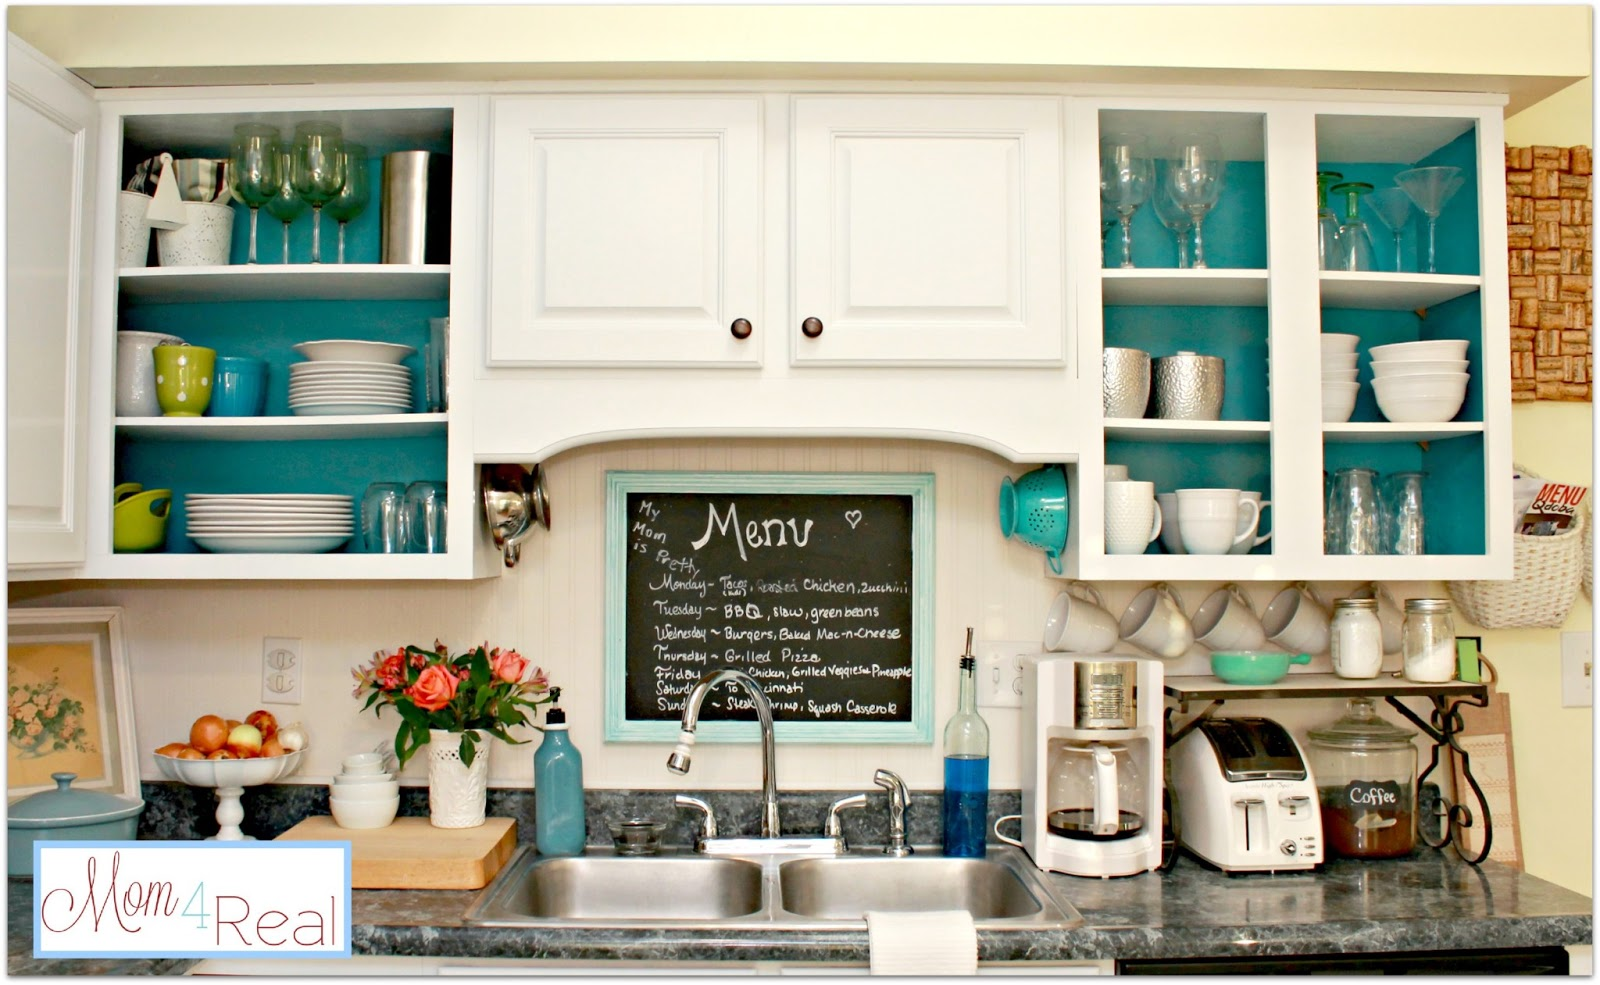 Open Cabinets With White, Aqua, Lime Green, & Silver Accents - Mom on open kitchen into living room, open concept kitchen layouts, open concept remodel, open concept decorating, open kitchen and living room, open concept family, open kitchen family room area, vaulted ceilings ideas, open concept deck ideas, open concept small kitchen, open concept dining room, open concept color, open concept kitchen backsplash, open concept art, open concept modern kitchen, open concept kitchen islands, open concept architecture, open concept kitchen people, open concept interiors, open concept windows,